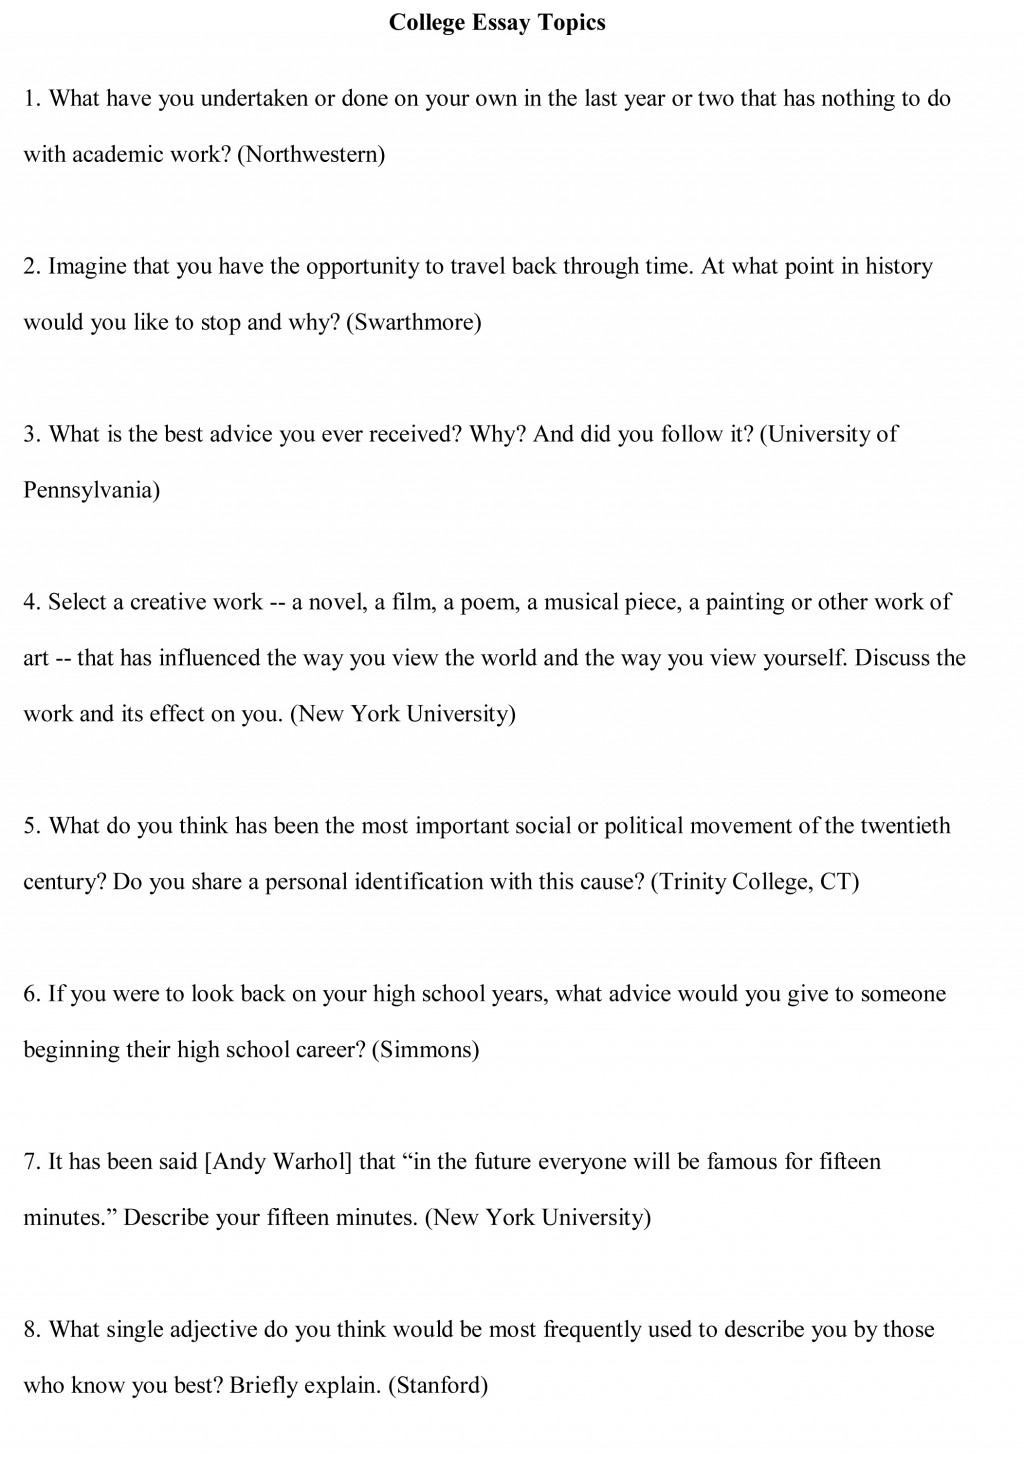 003 Help To Write Essay For Free Online College Topics Sample1 Unbelievable A Large